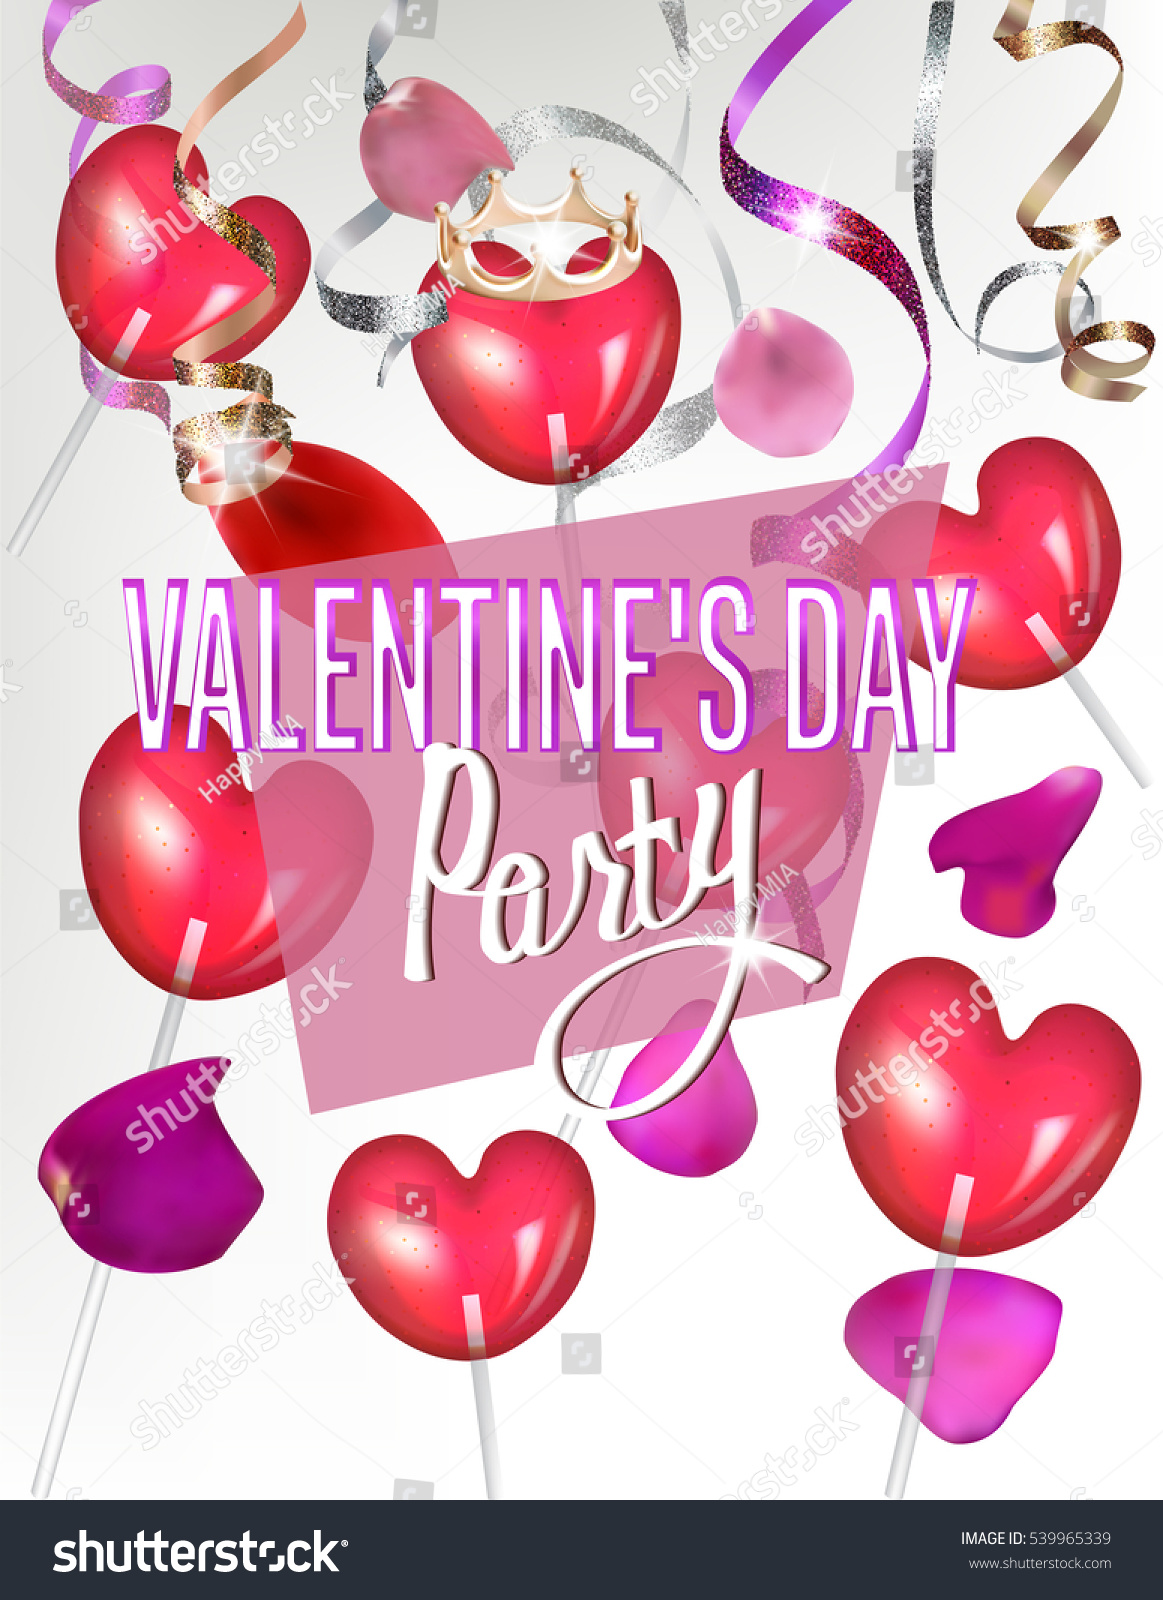 Valentines Day Party Invitations Image collections - Party ...